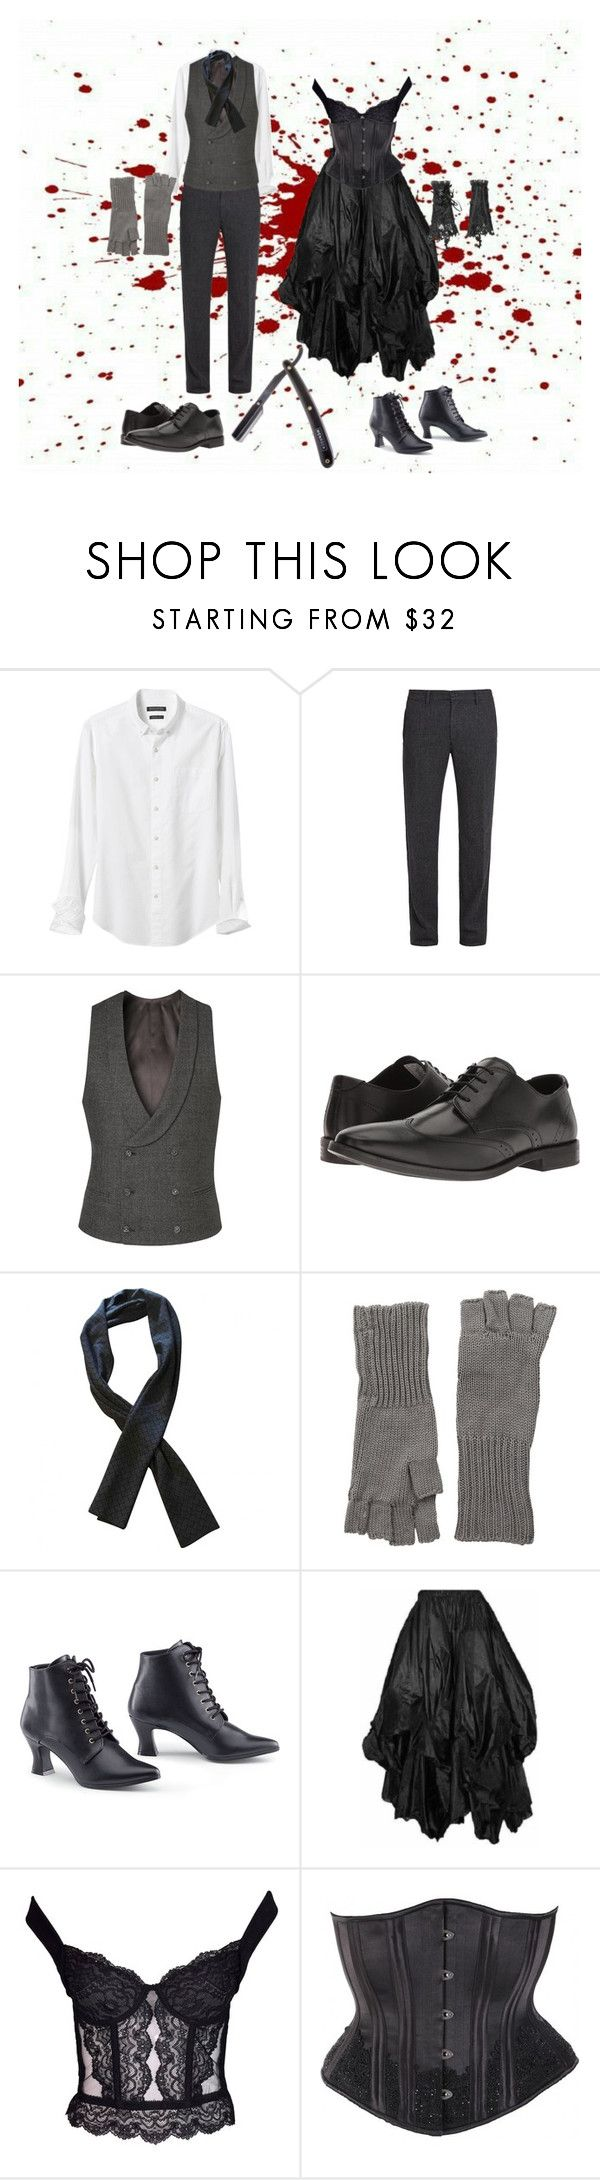 """""""Sweeney Todd & Ms. Lovett"""" by artificialsin ❤ liked on Polyvore featuring Banana Republic, Massimo Alba, Diverso, Steve Madden, Hermès, Michael Stars and Christian Dior"""